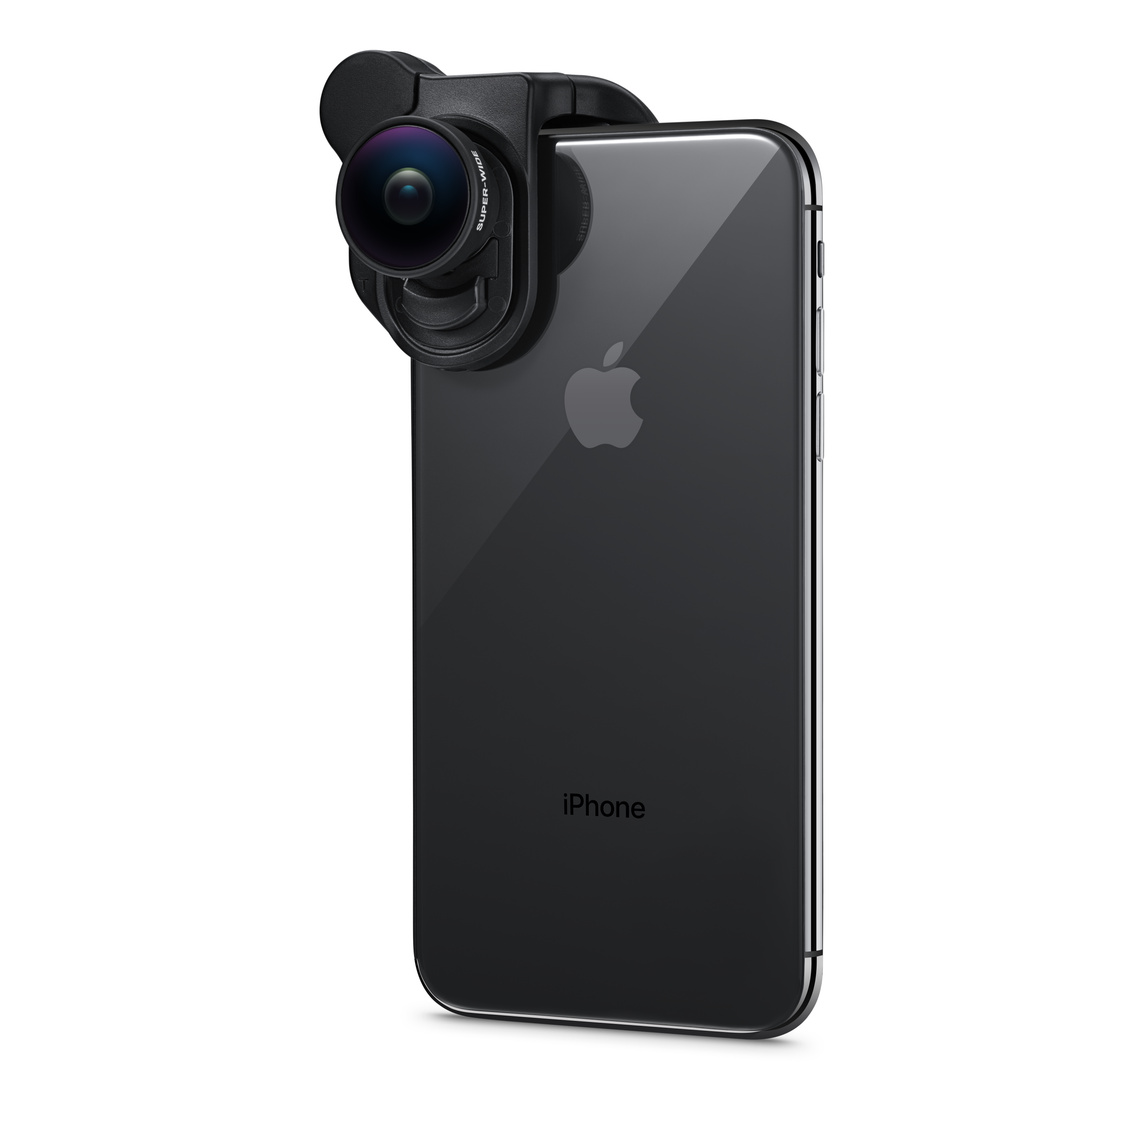 timeless design 65e1d 90b65 olloclip Mobile Photography Lens Box Set for iPhone X